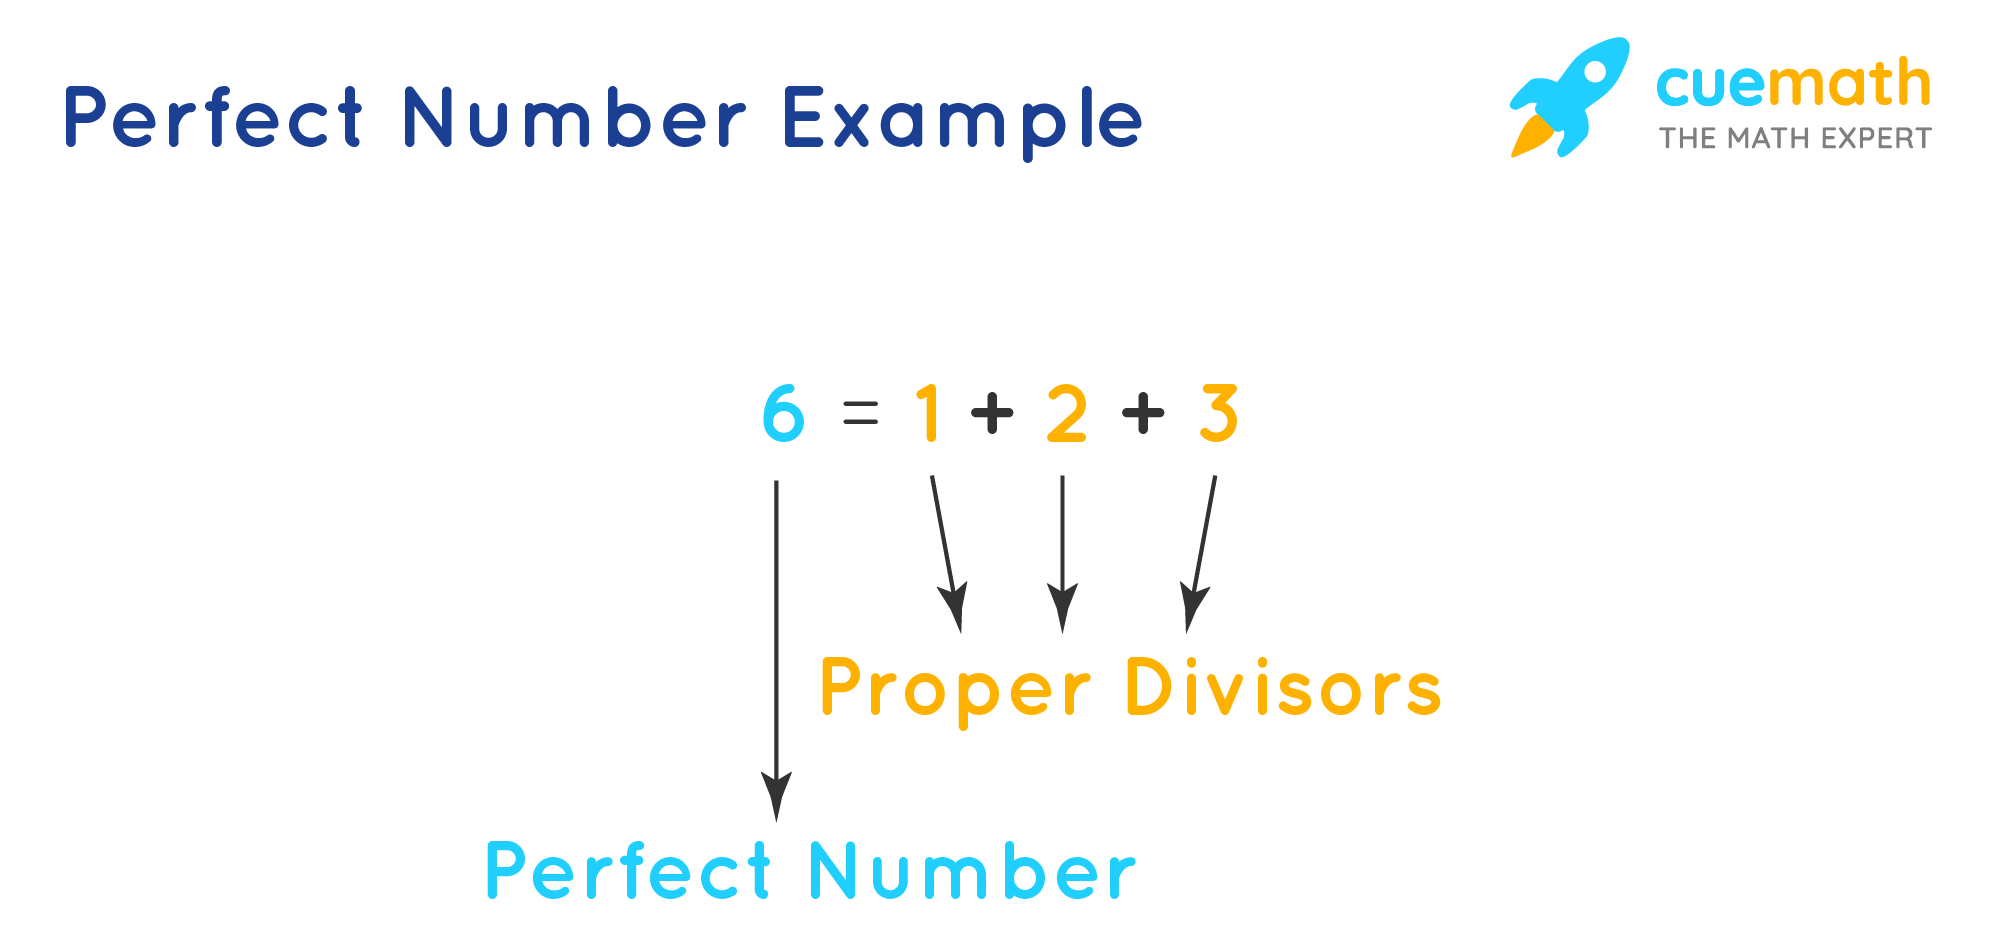 Perfect number example